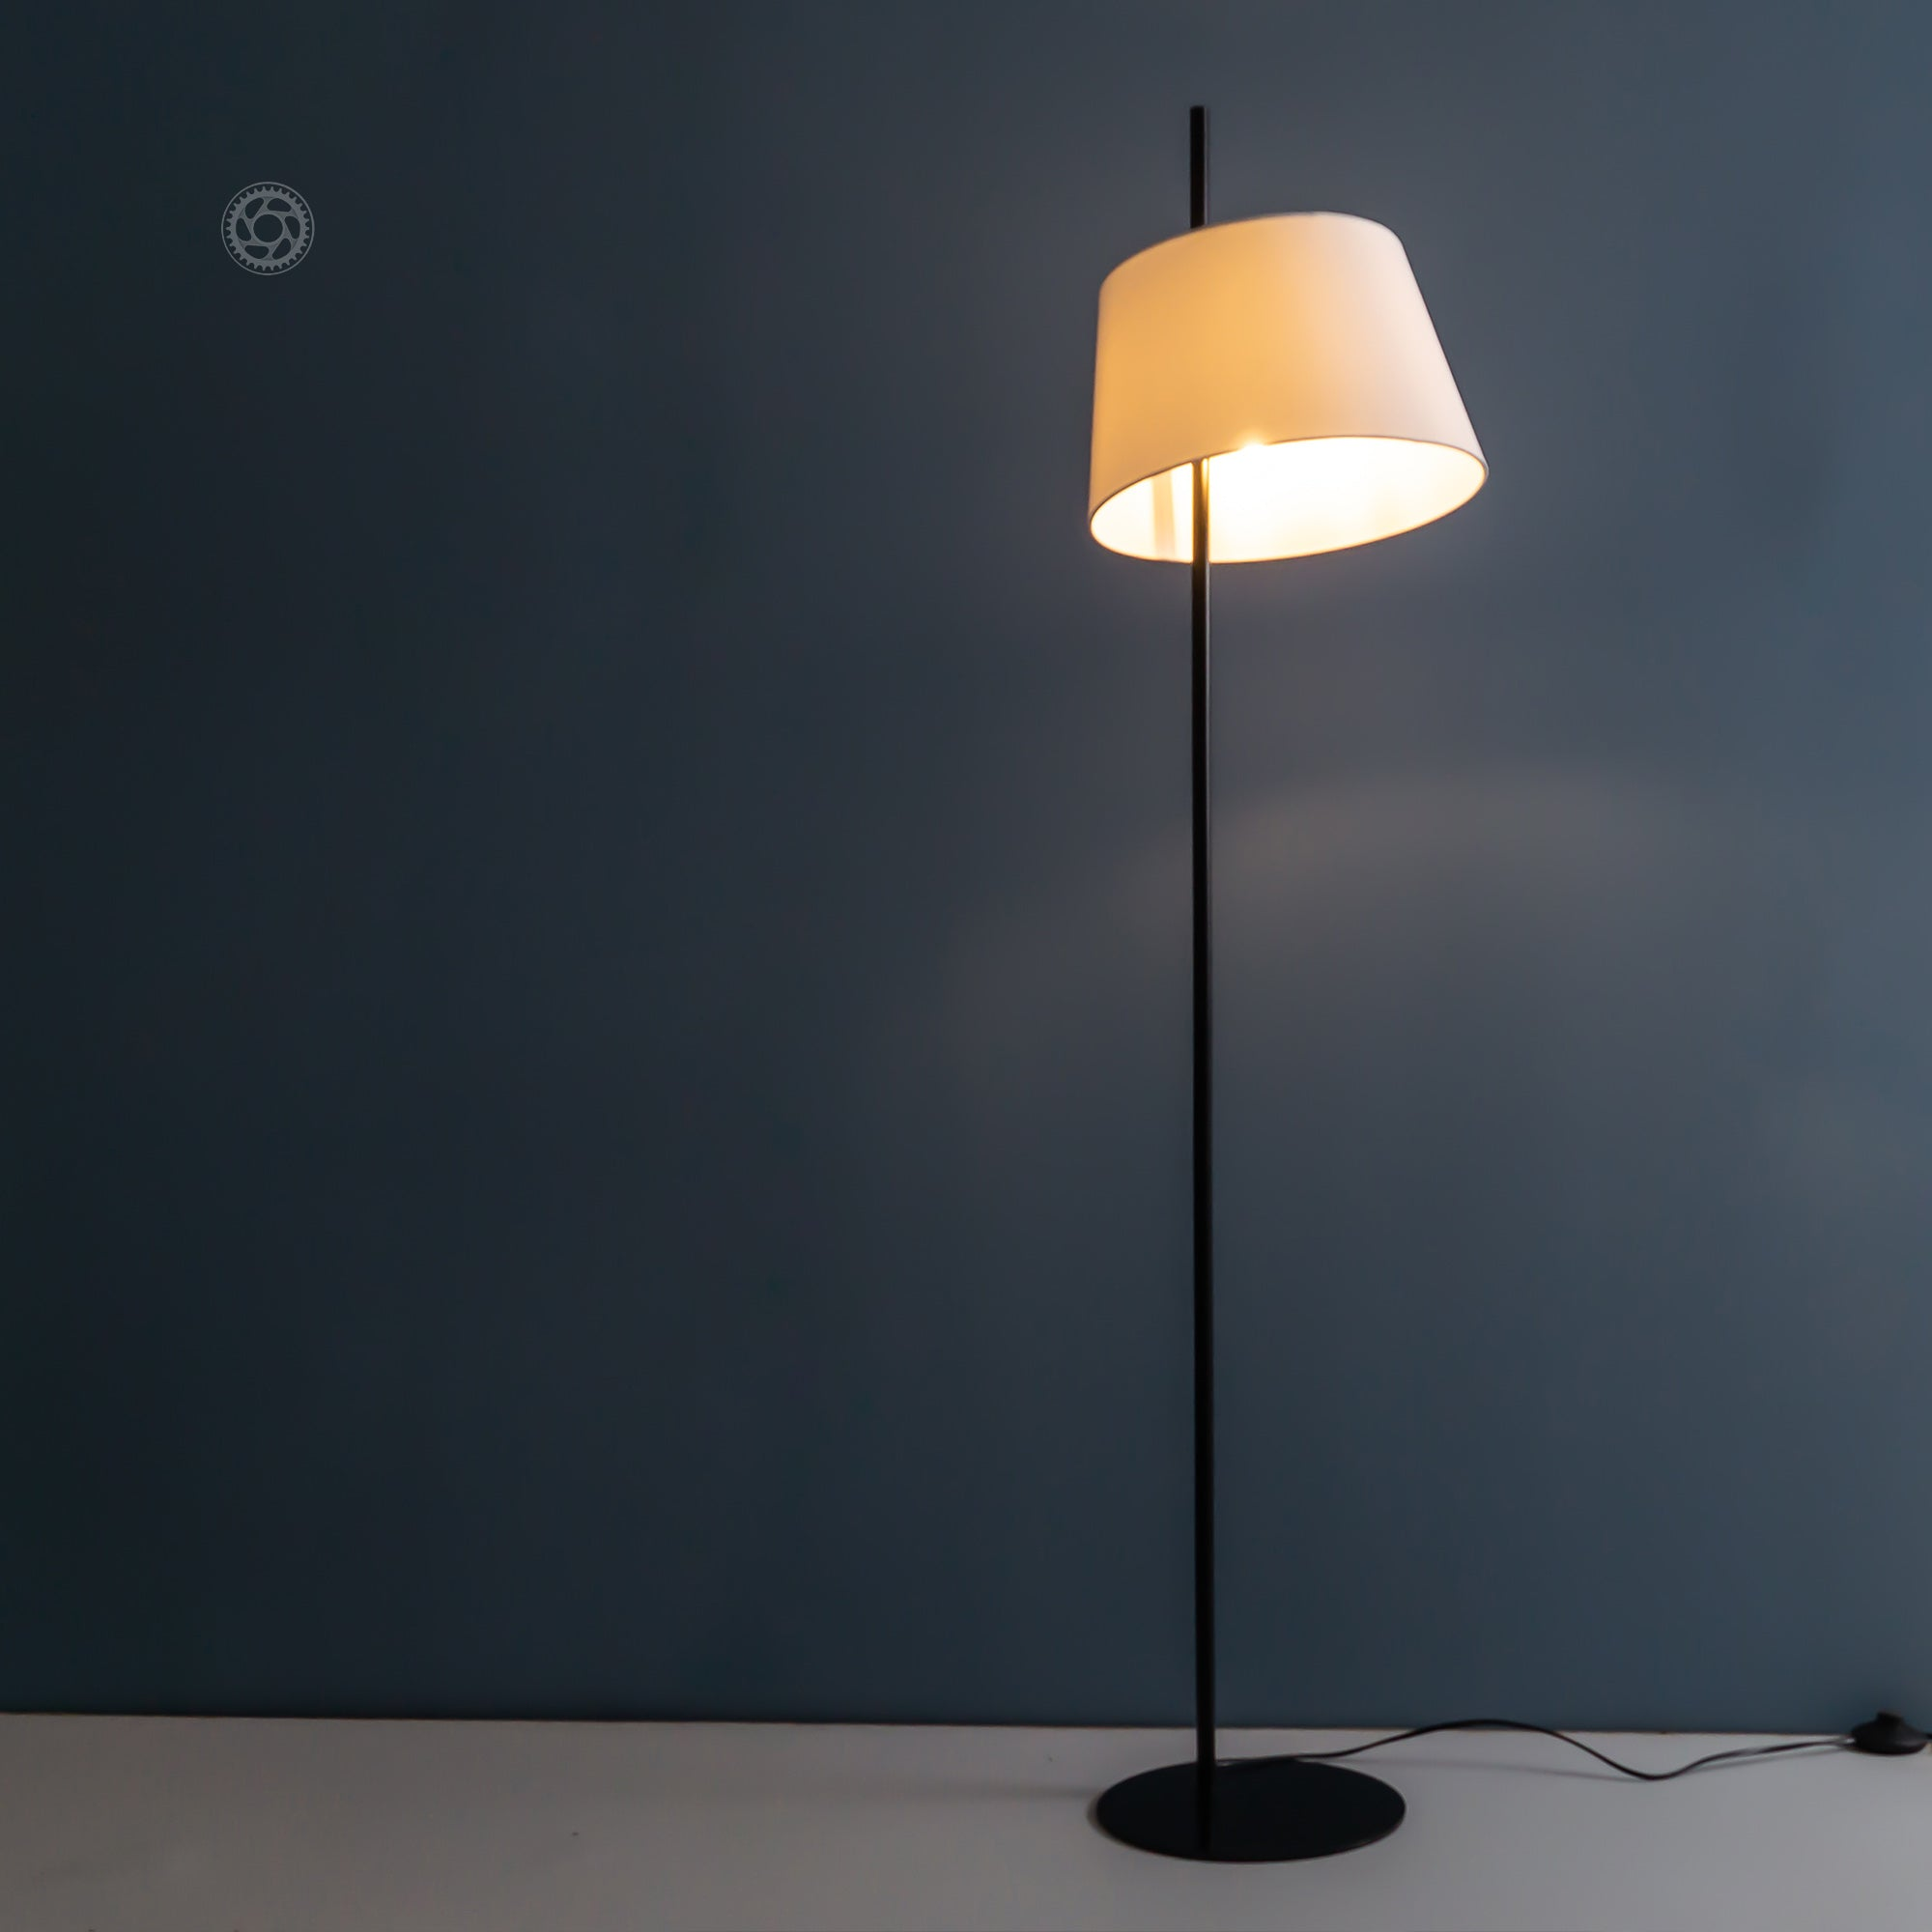 Nordic Black Metal Floor Lamp - The Black Steel